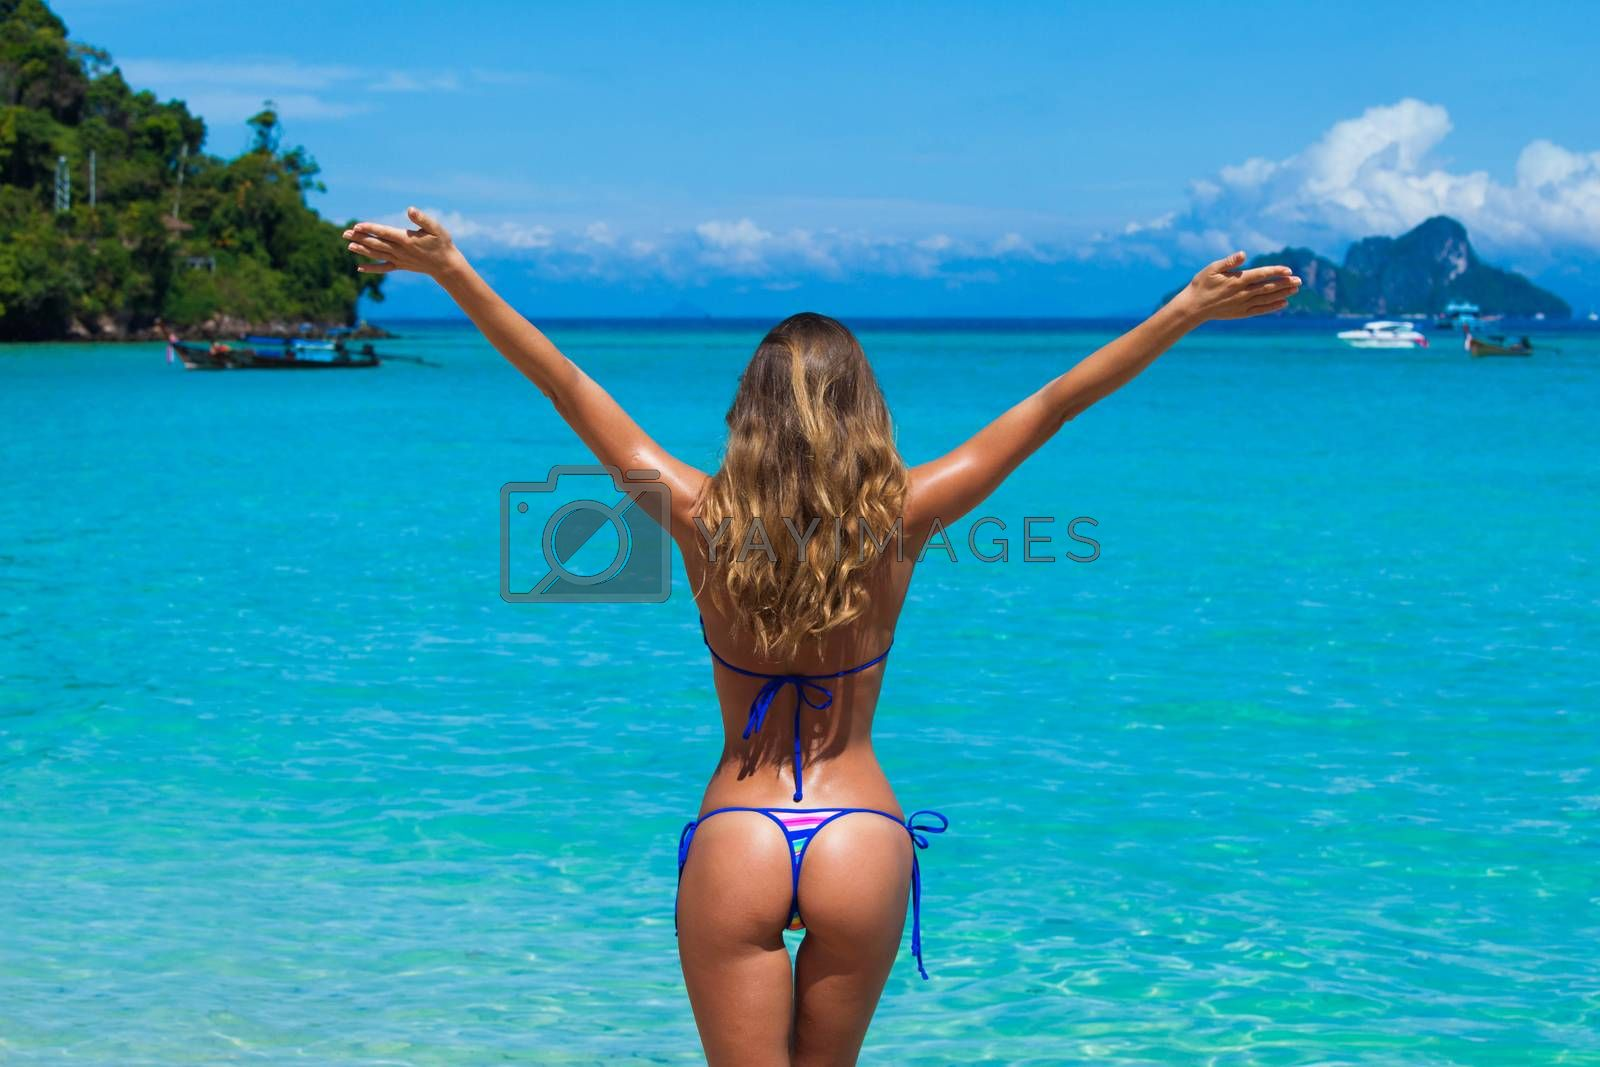 Beach summer holidays woman in happy freedom concept with arms raised. Woman wearing bikini enjoy vacation in Thailand